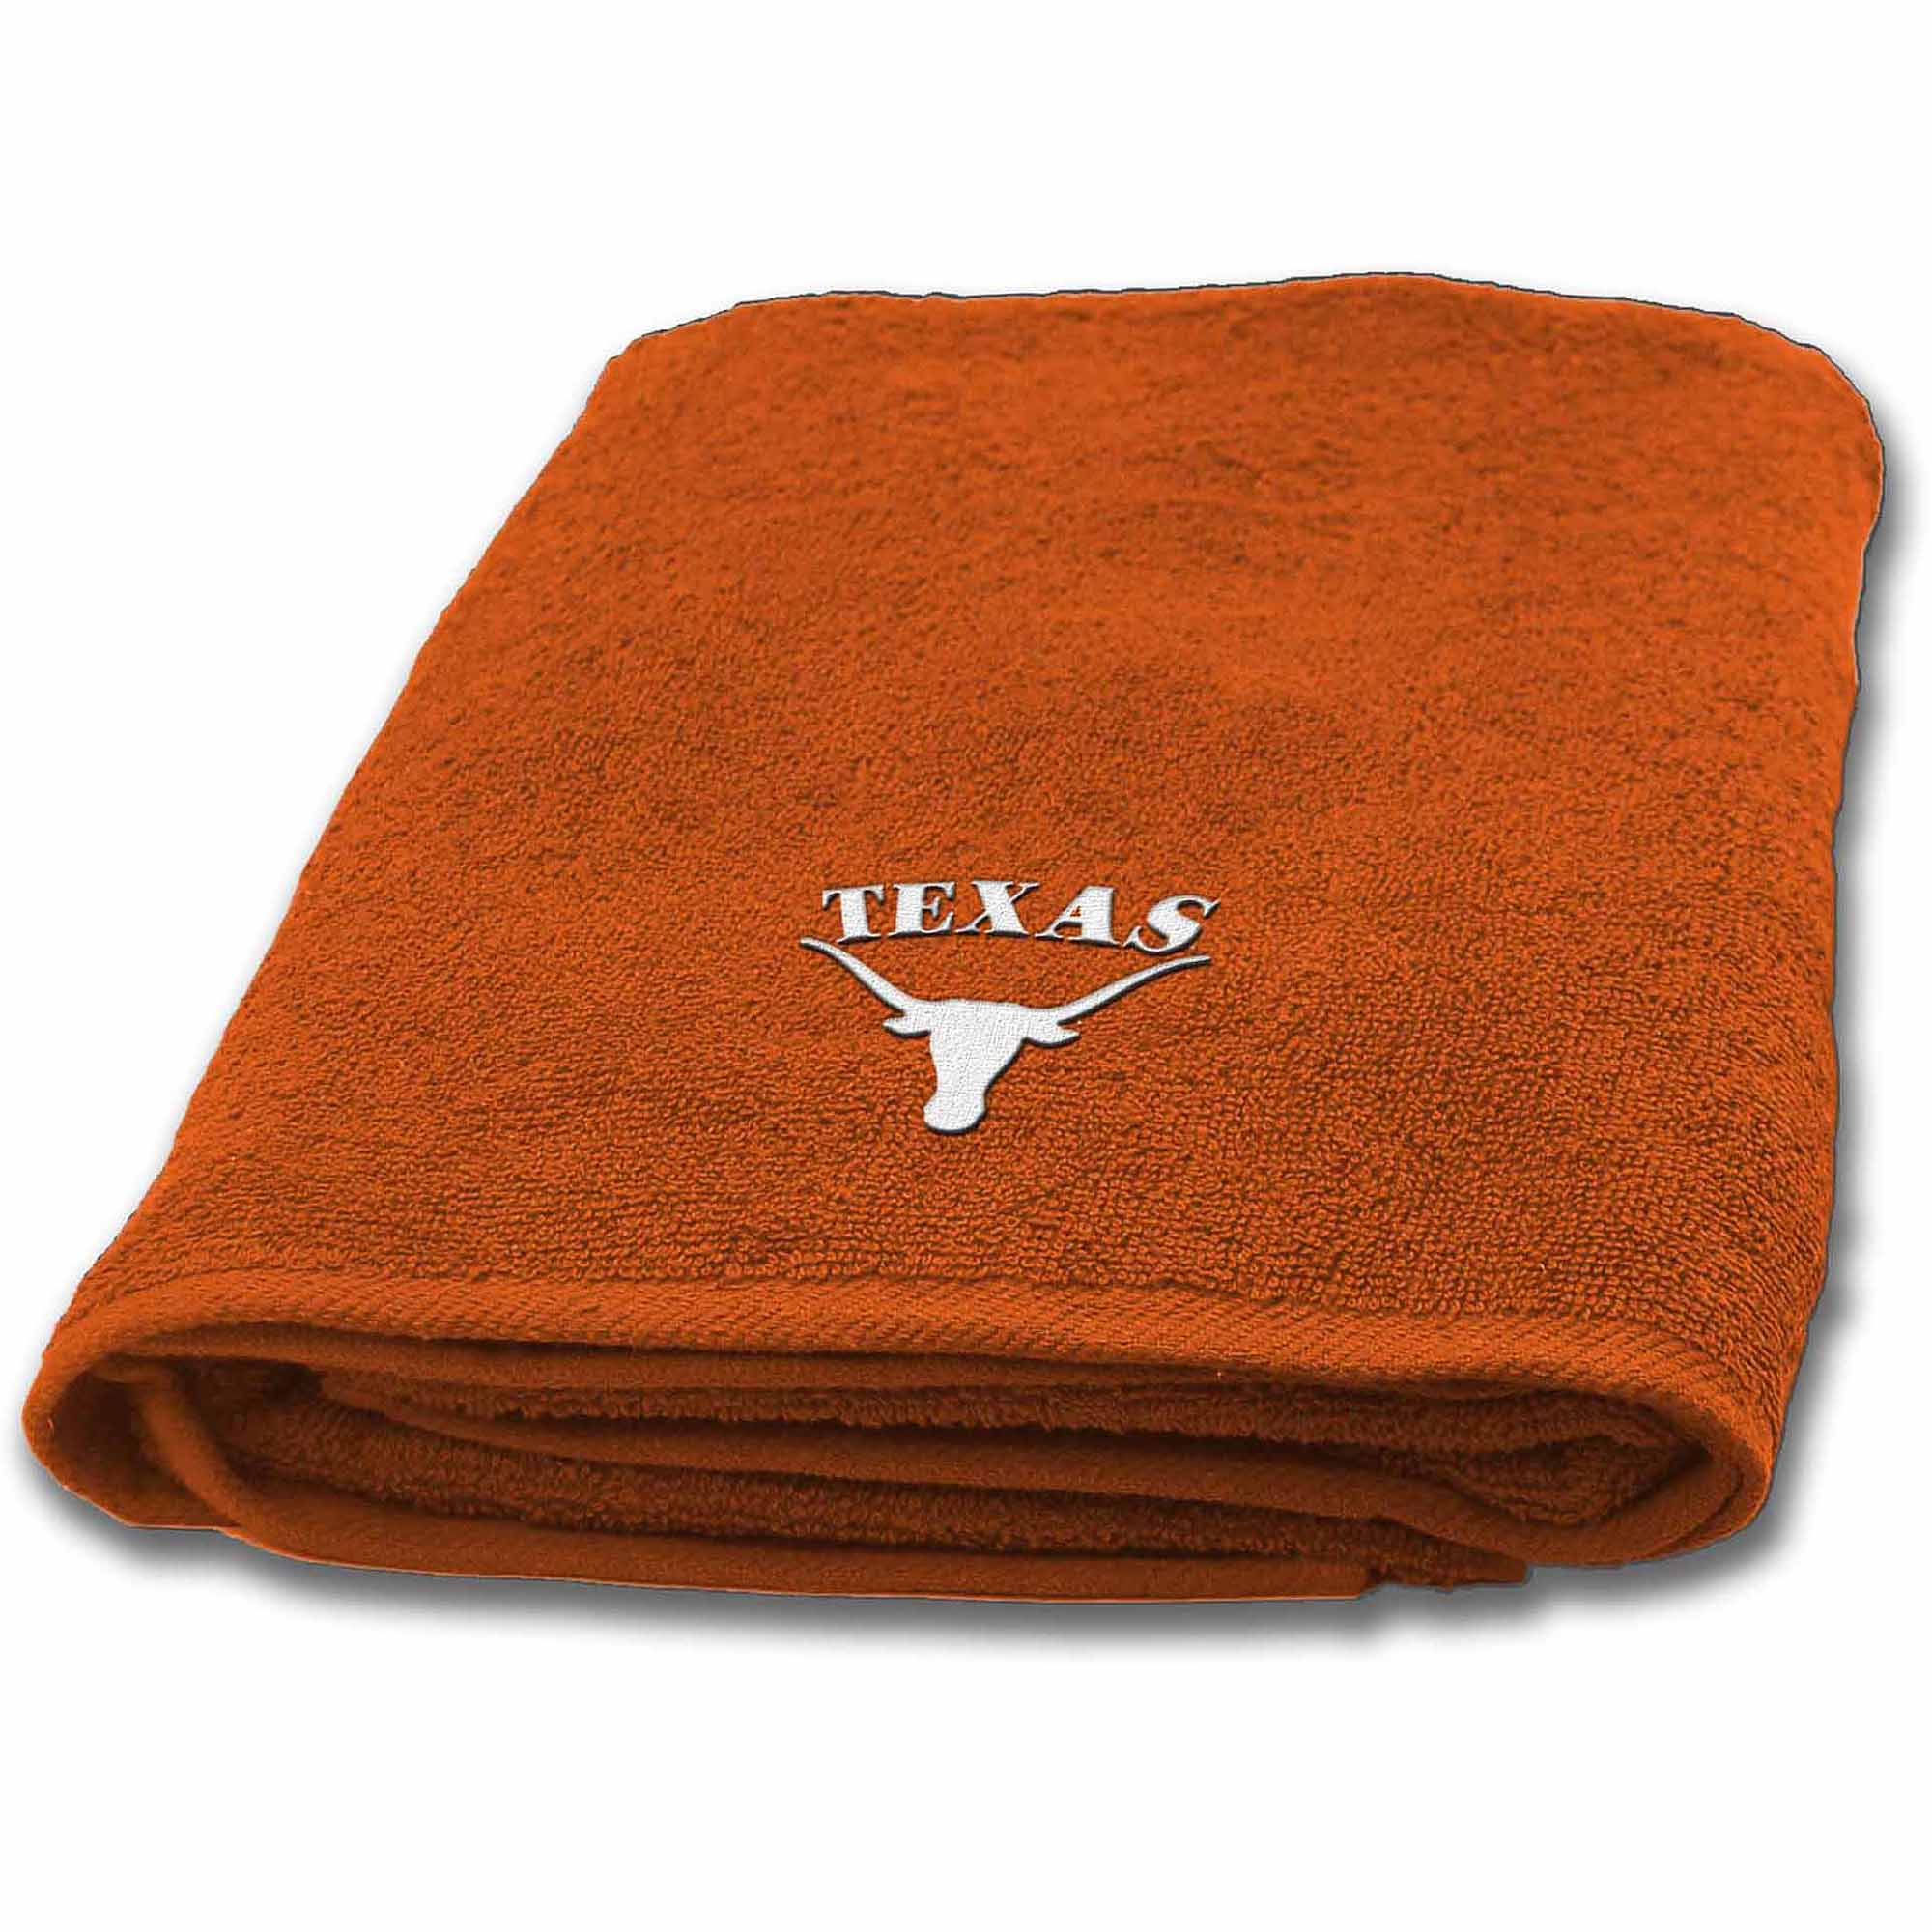 NCAA University of Texas Bath Towel, 1 Each